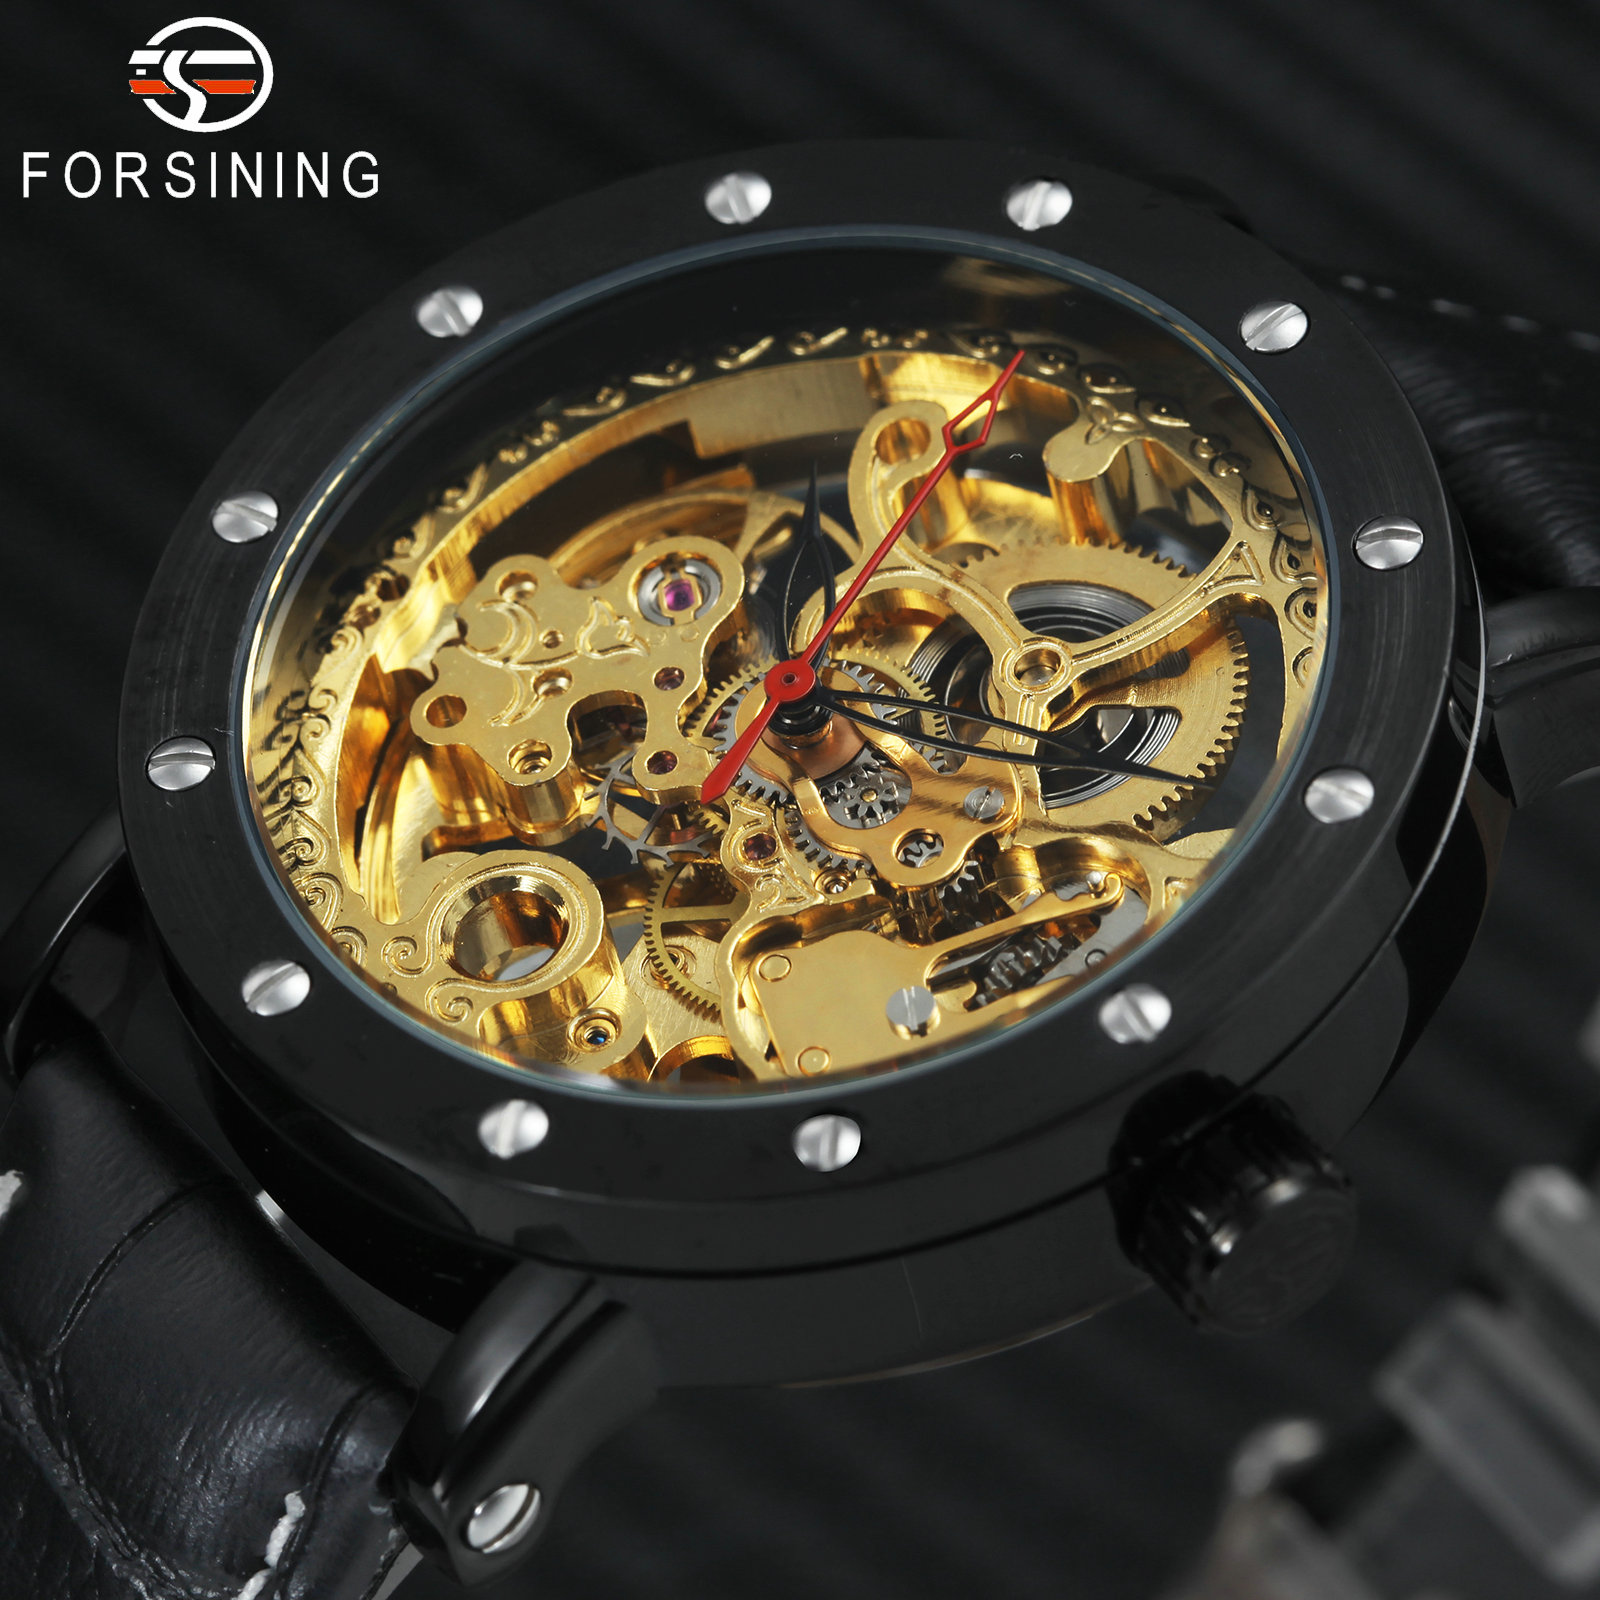 FORSINING Fashion Business Auto Mechanical Watch Men Leather Strap Golden Skeleton Dial Top Brand Luxury Mens Wrist Watches winner mens watches top brand luxury leather strap skeleton skull auto mechanical fashion steampunk wrist watch men gift box